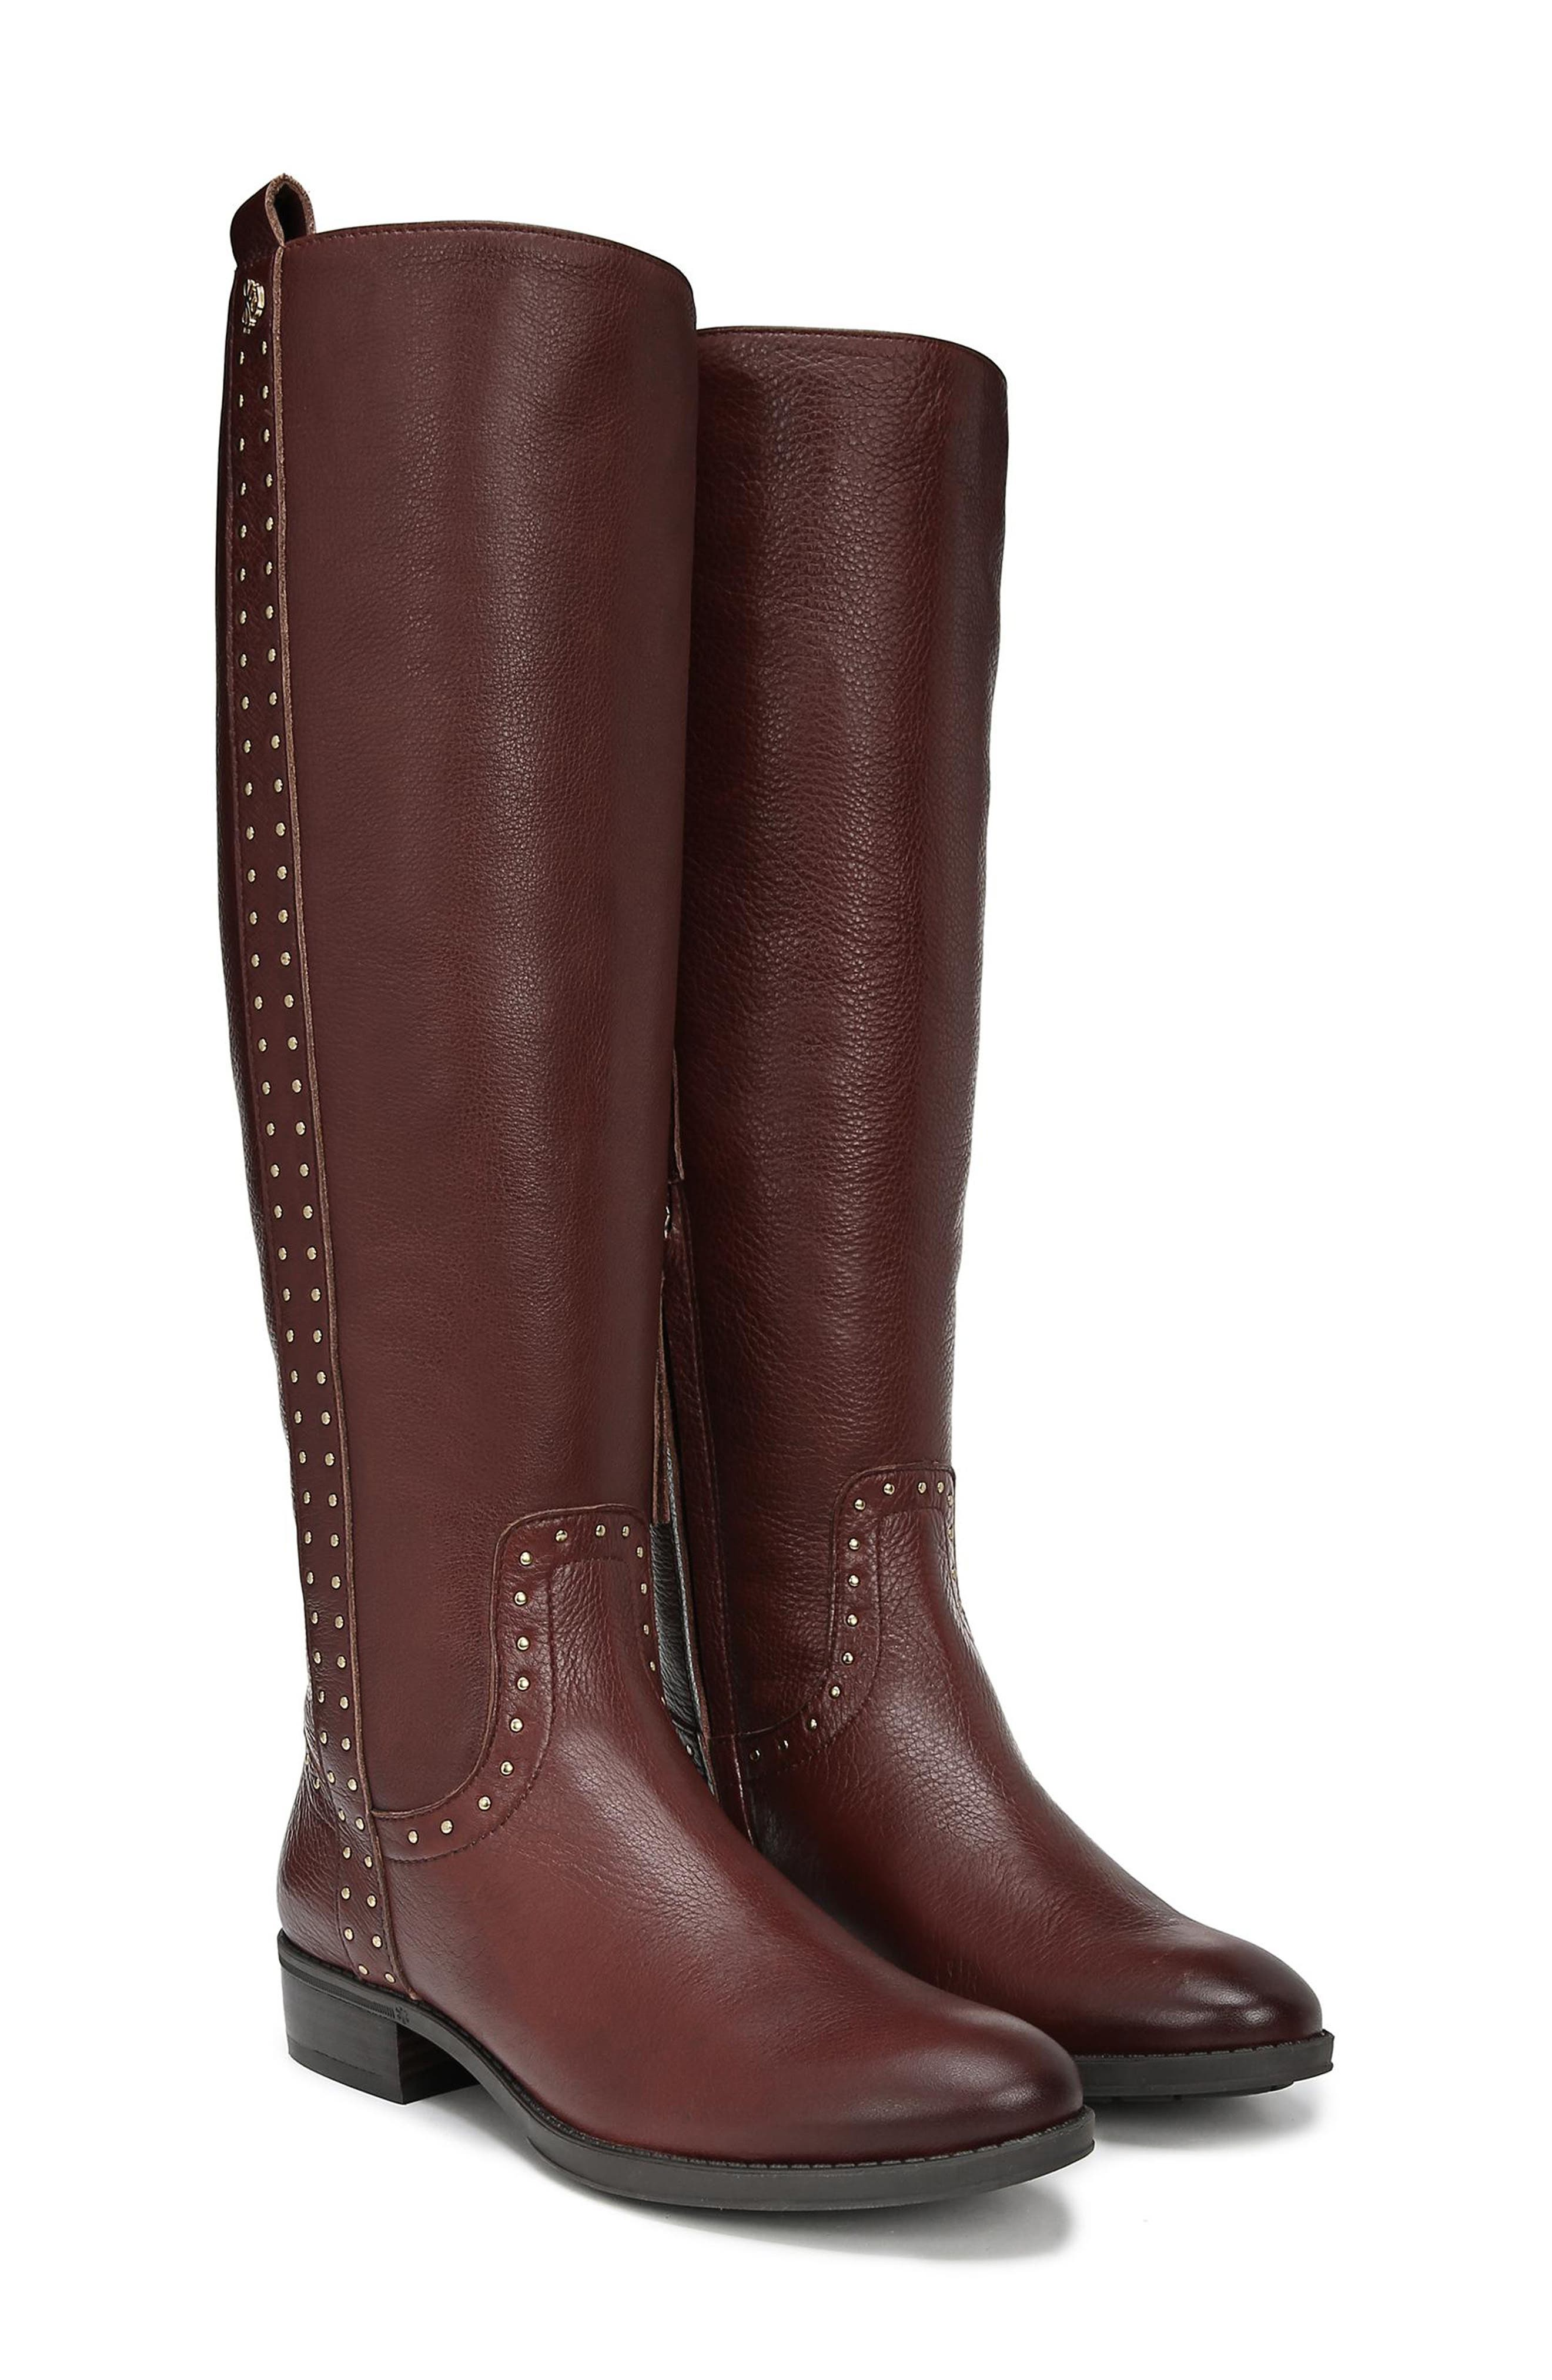 Prina Riding Boot,                             Alternate thumbnail 9, color,                             REDWOOD BROWN LEATHER